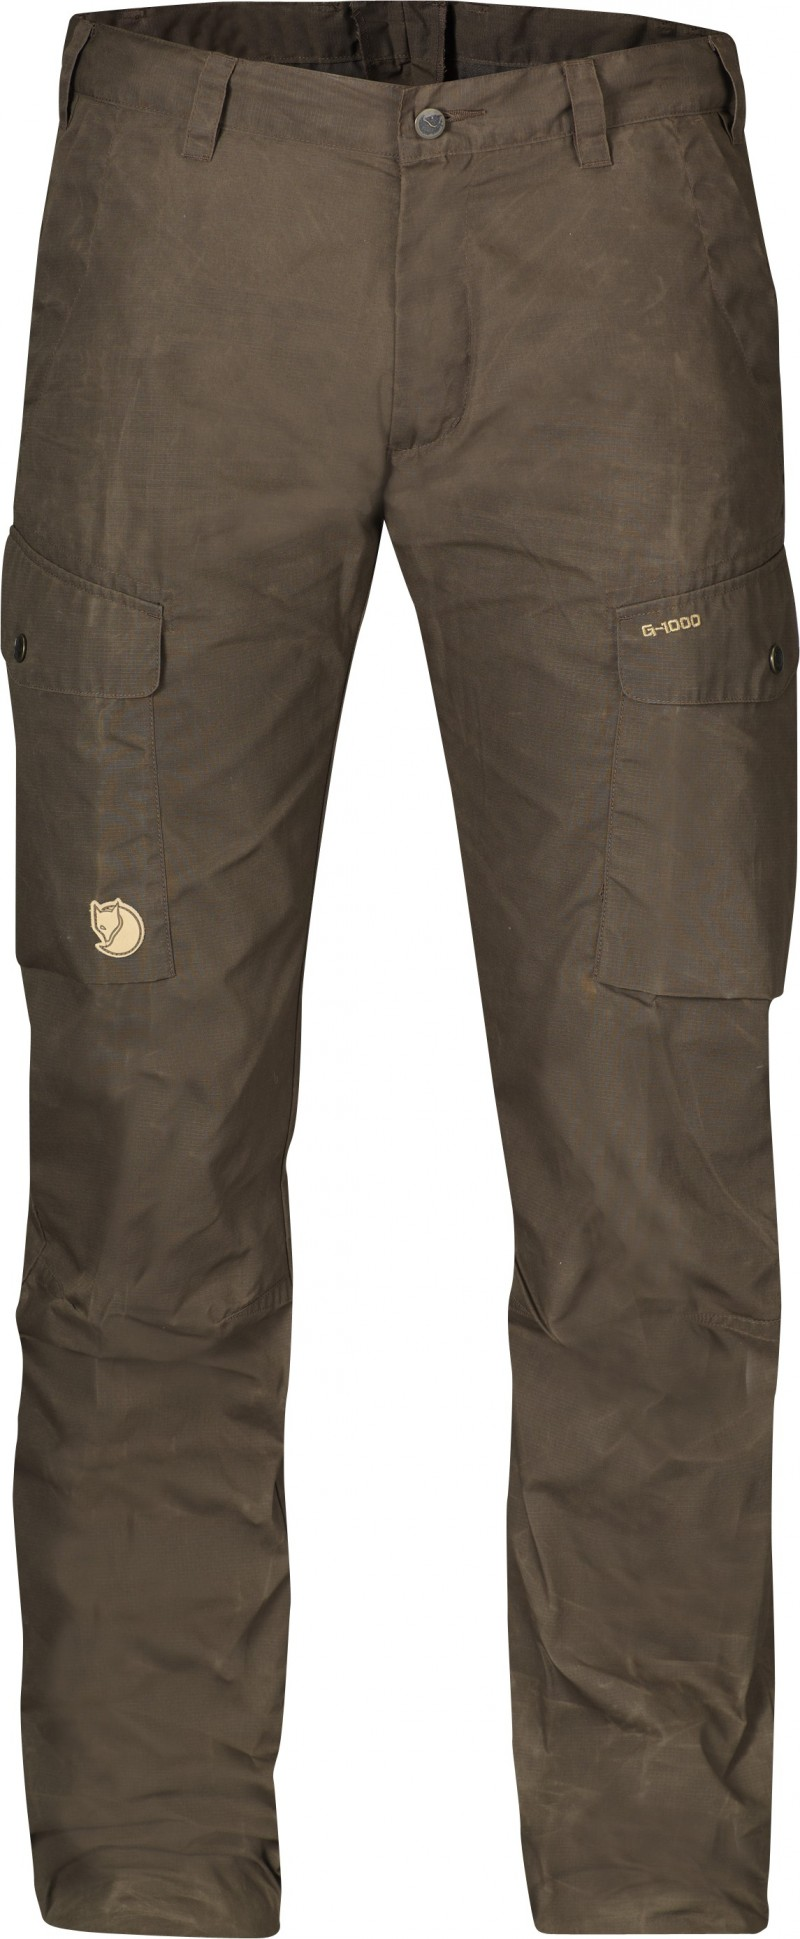 FjallRaven Ruaha Trousers Soft Brown-30